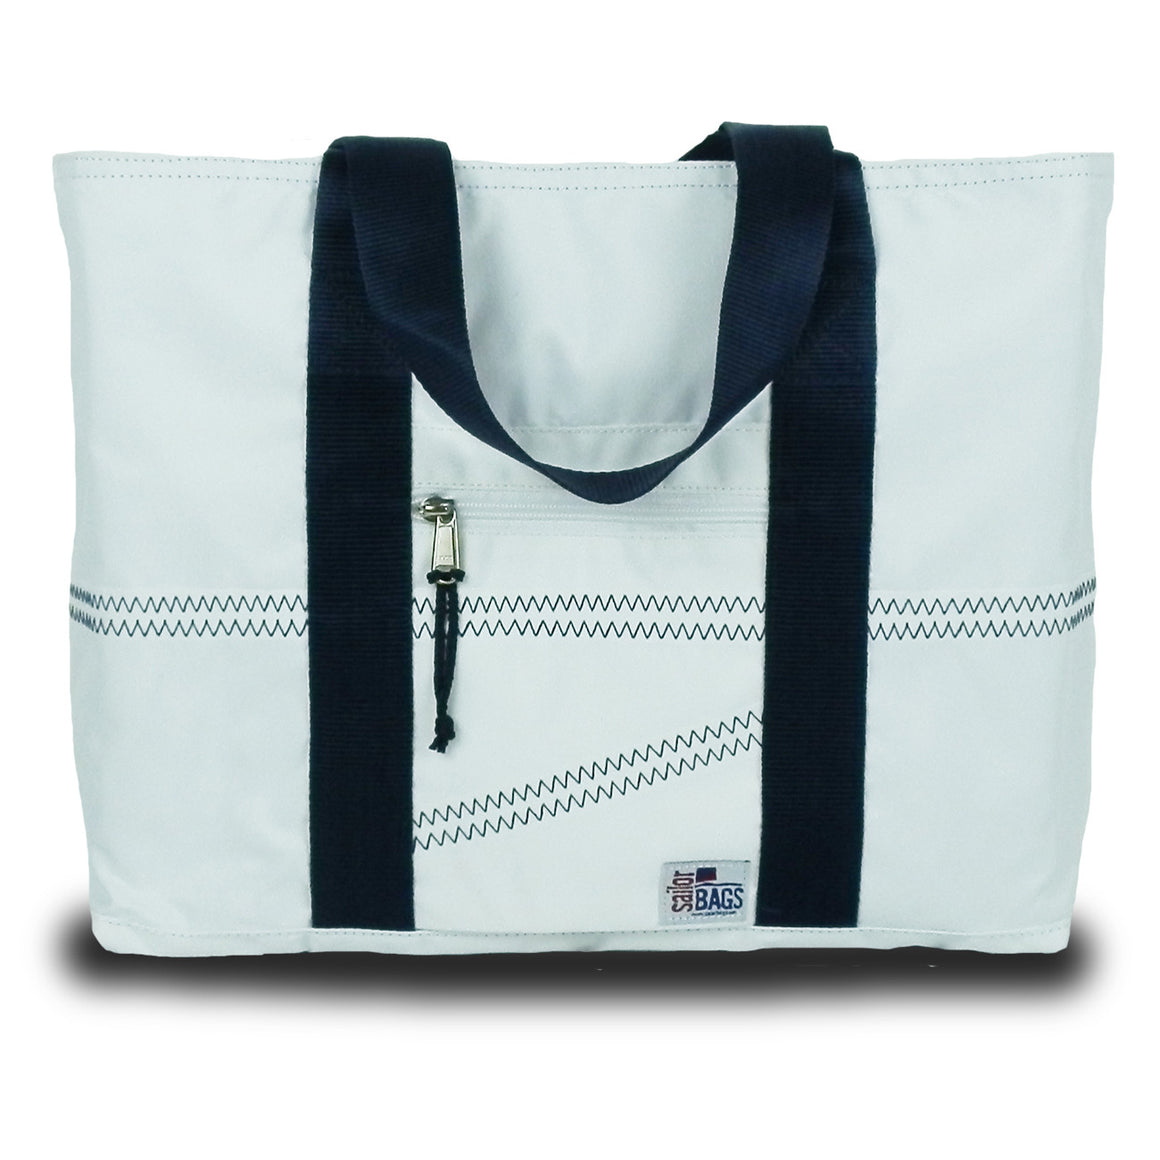 Newport Medium Tote by SailorBags White w/ Blue Trim